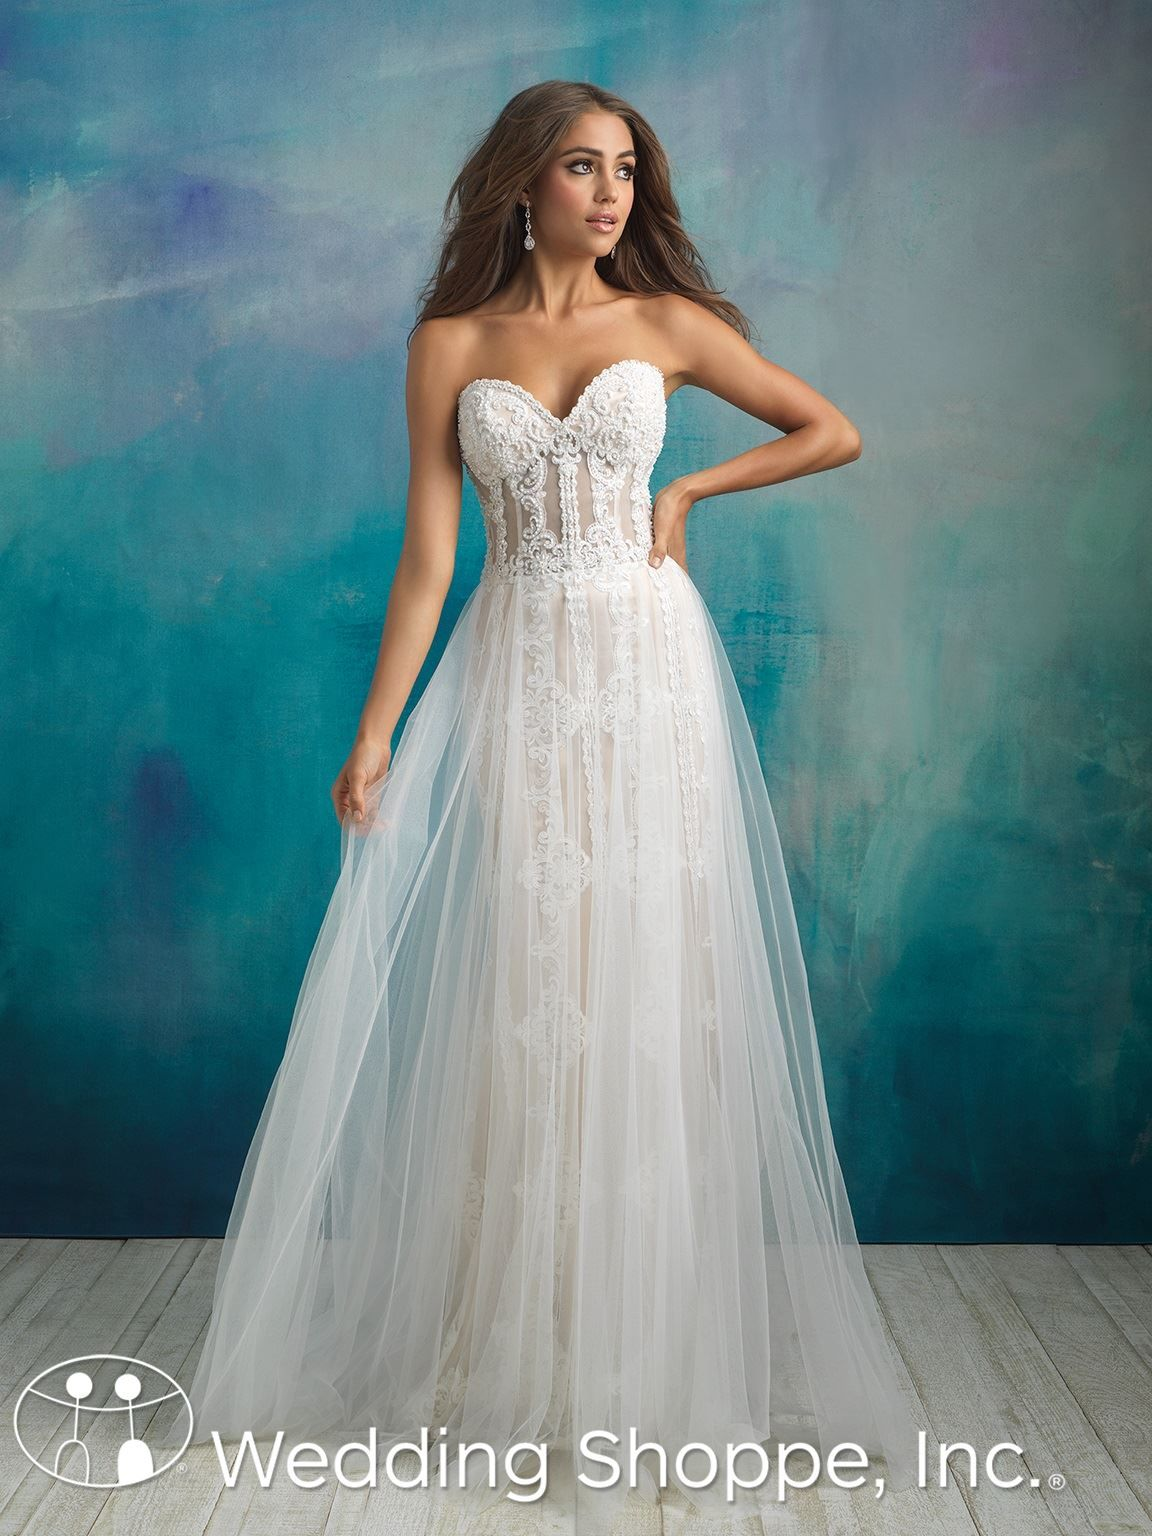 2018 Bridal Trends: The Top Styles to Fall in Love With | Wedding ...